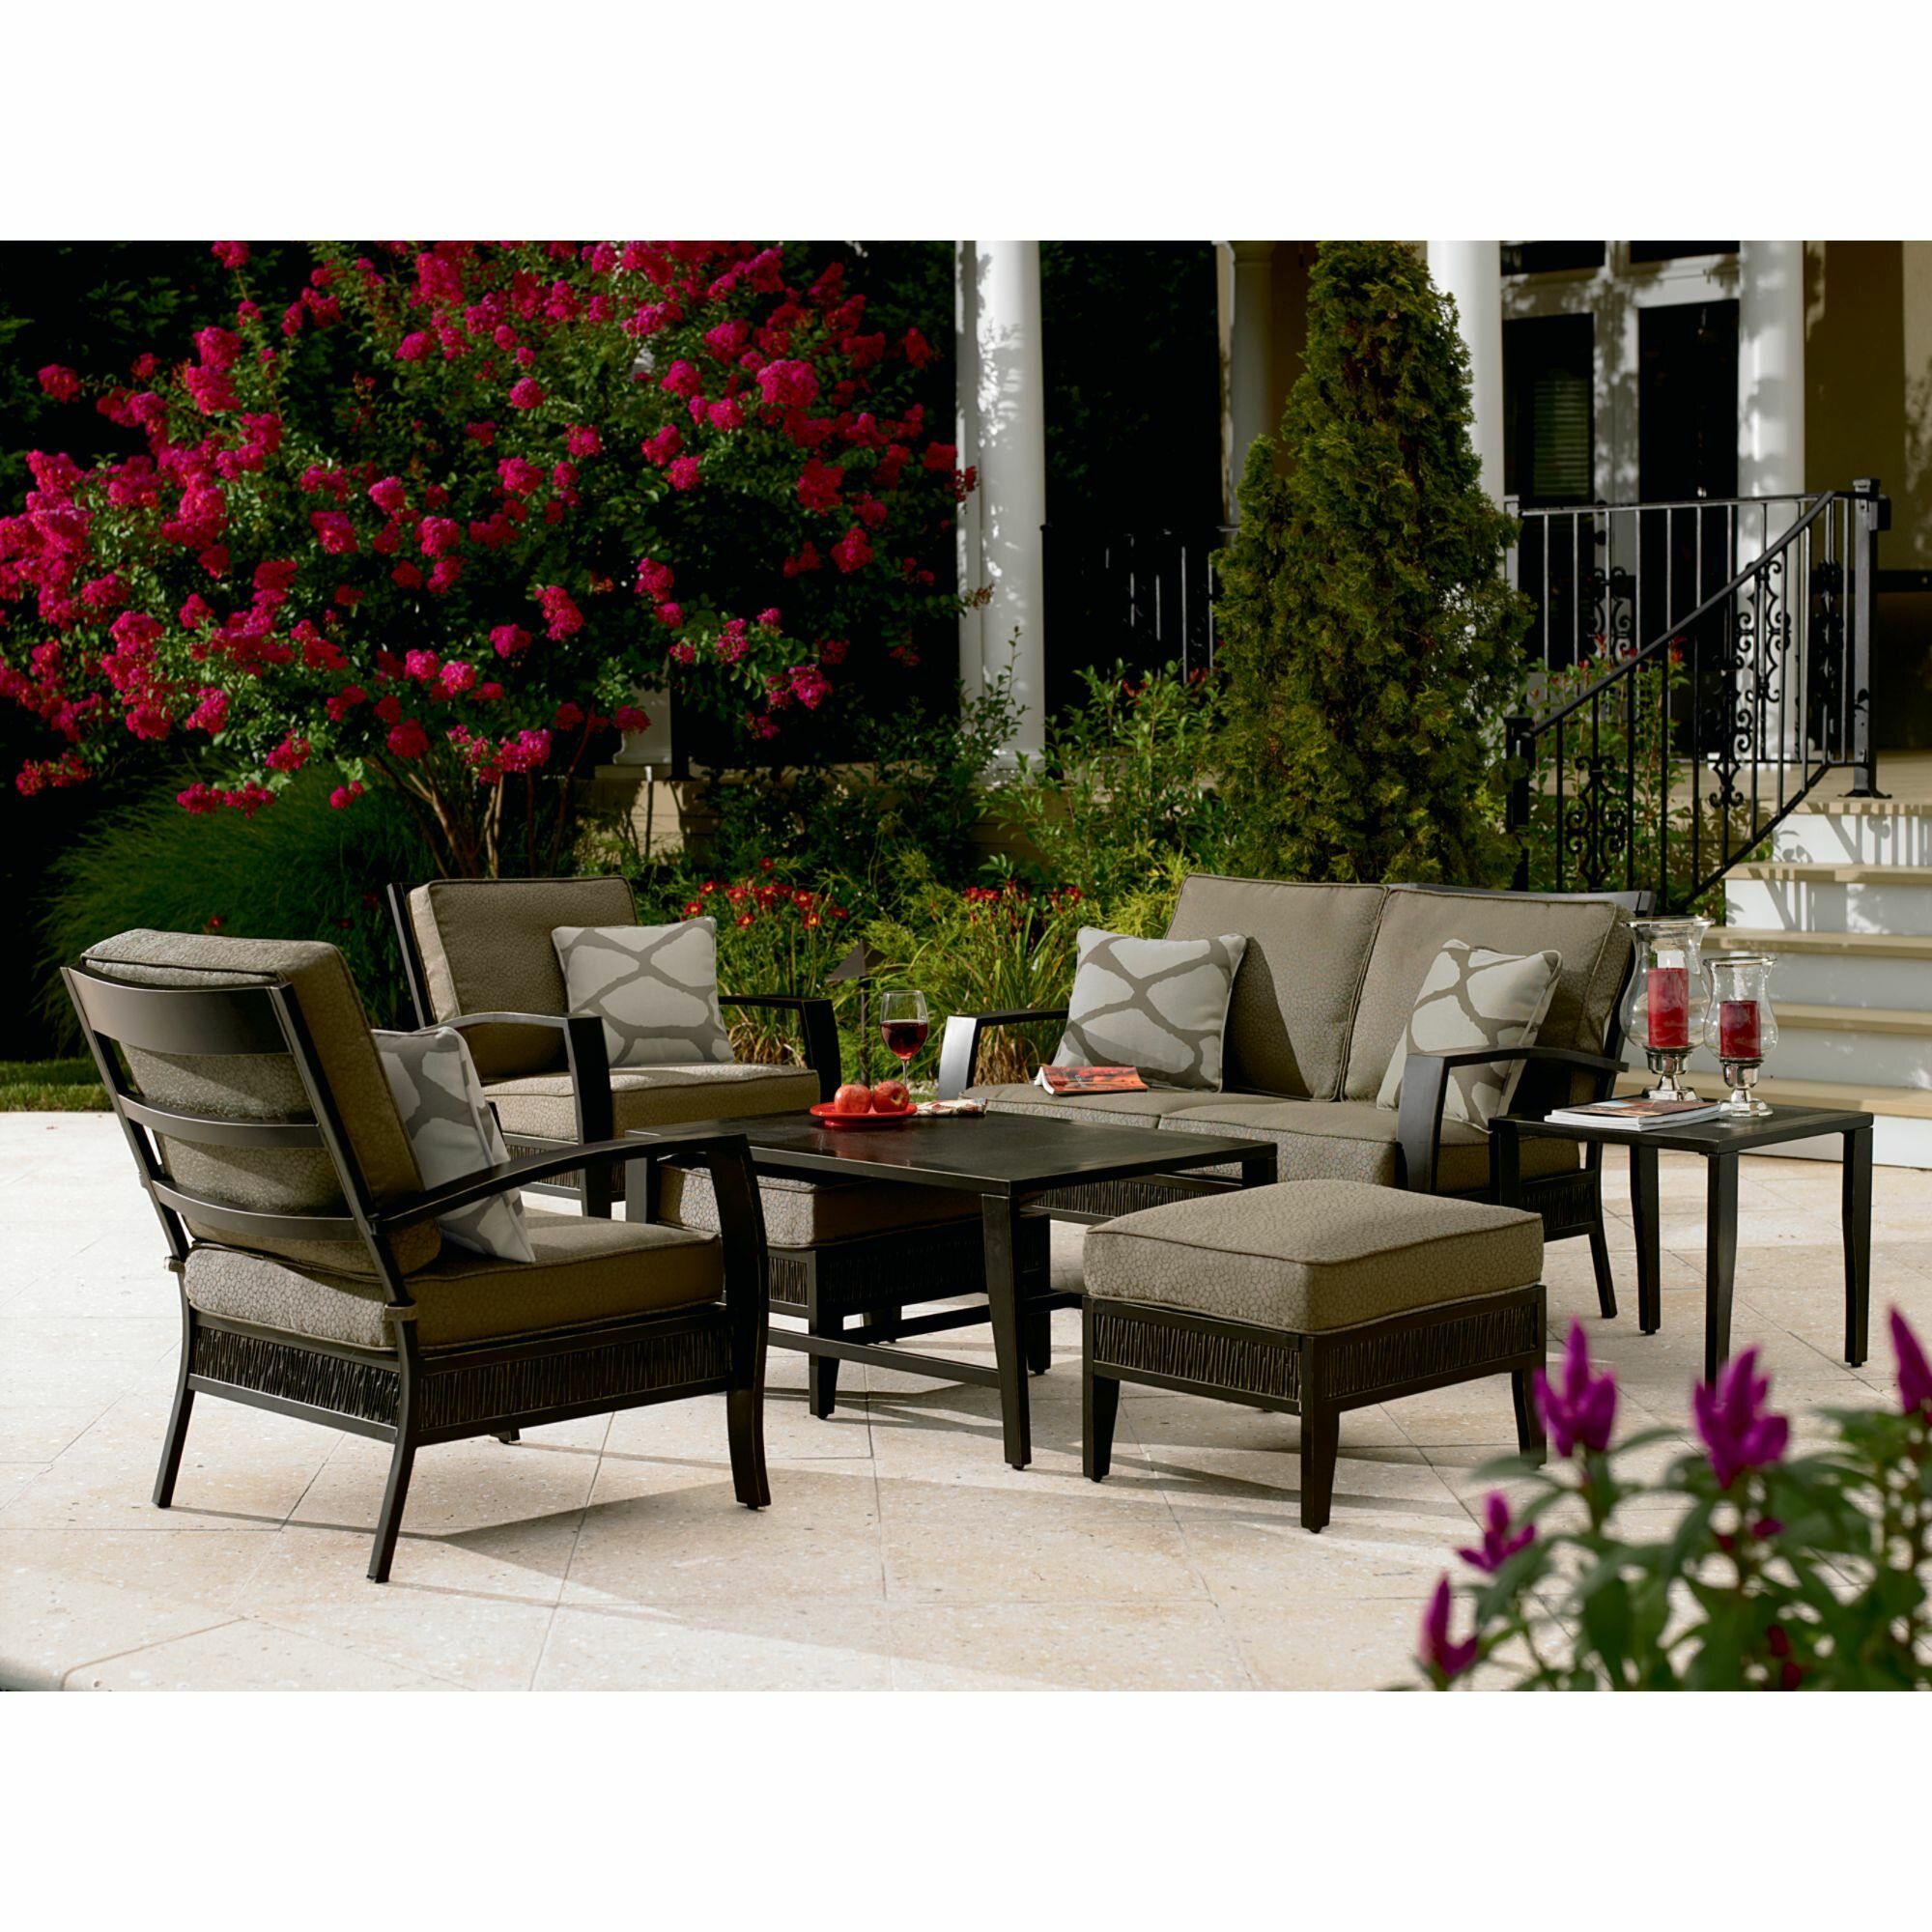 Patio: Sears Outlet Patio Furniture For Best Outdoor ...